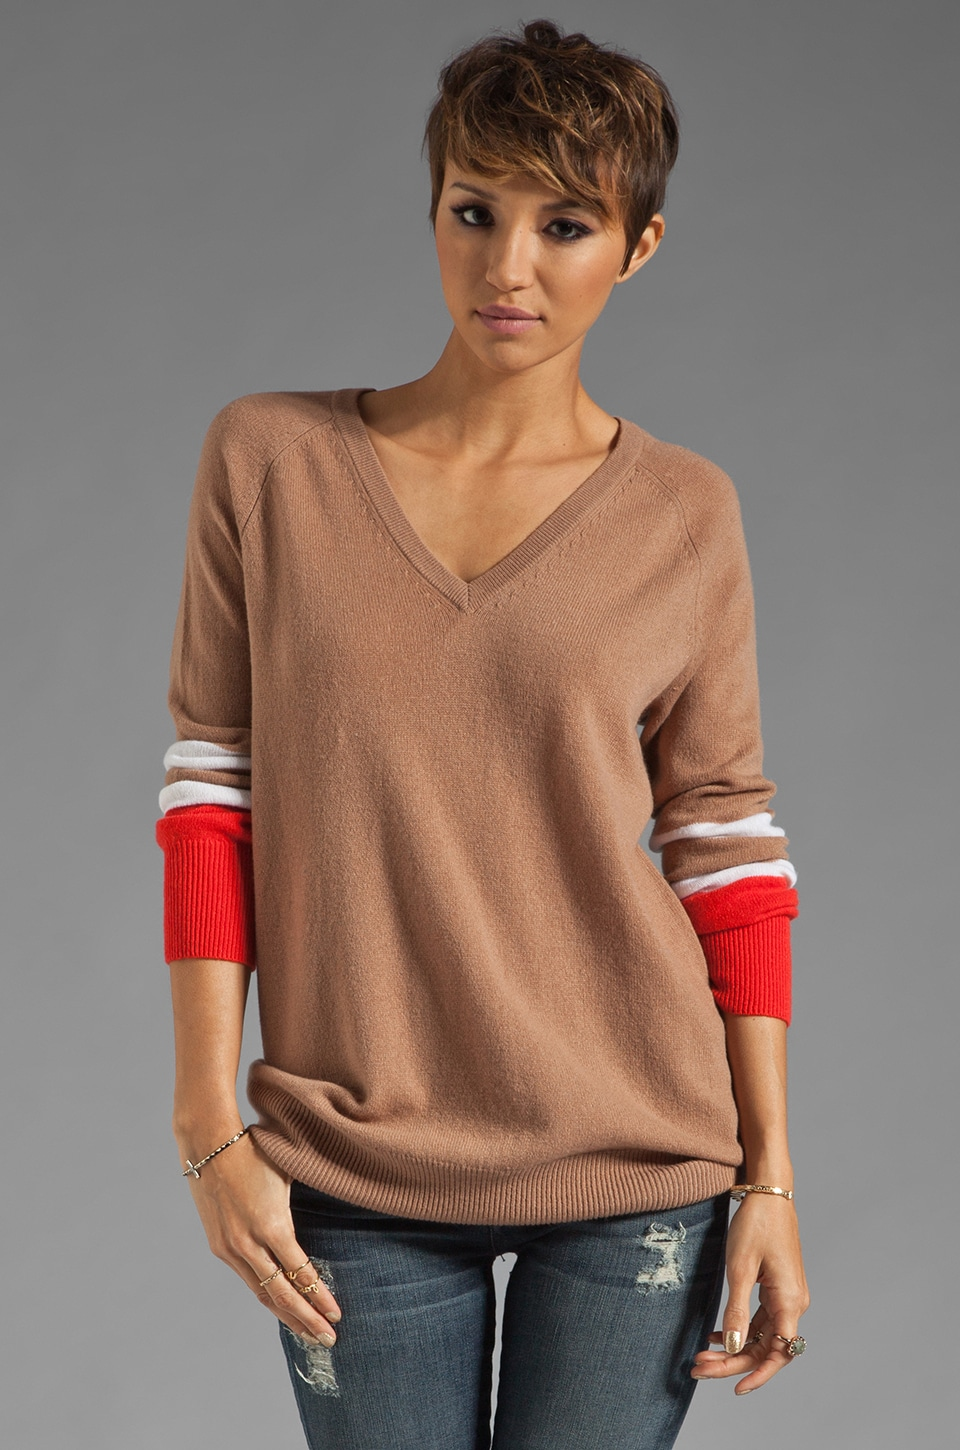 Equipment Asher V Neck Colorblock Sweater in Camel